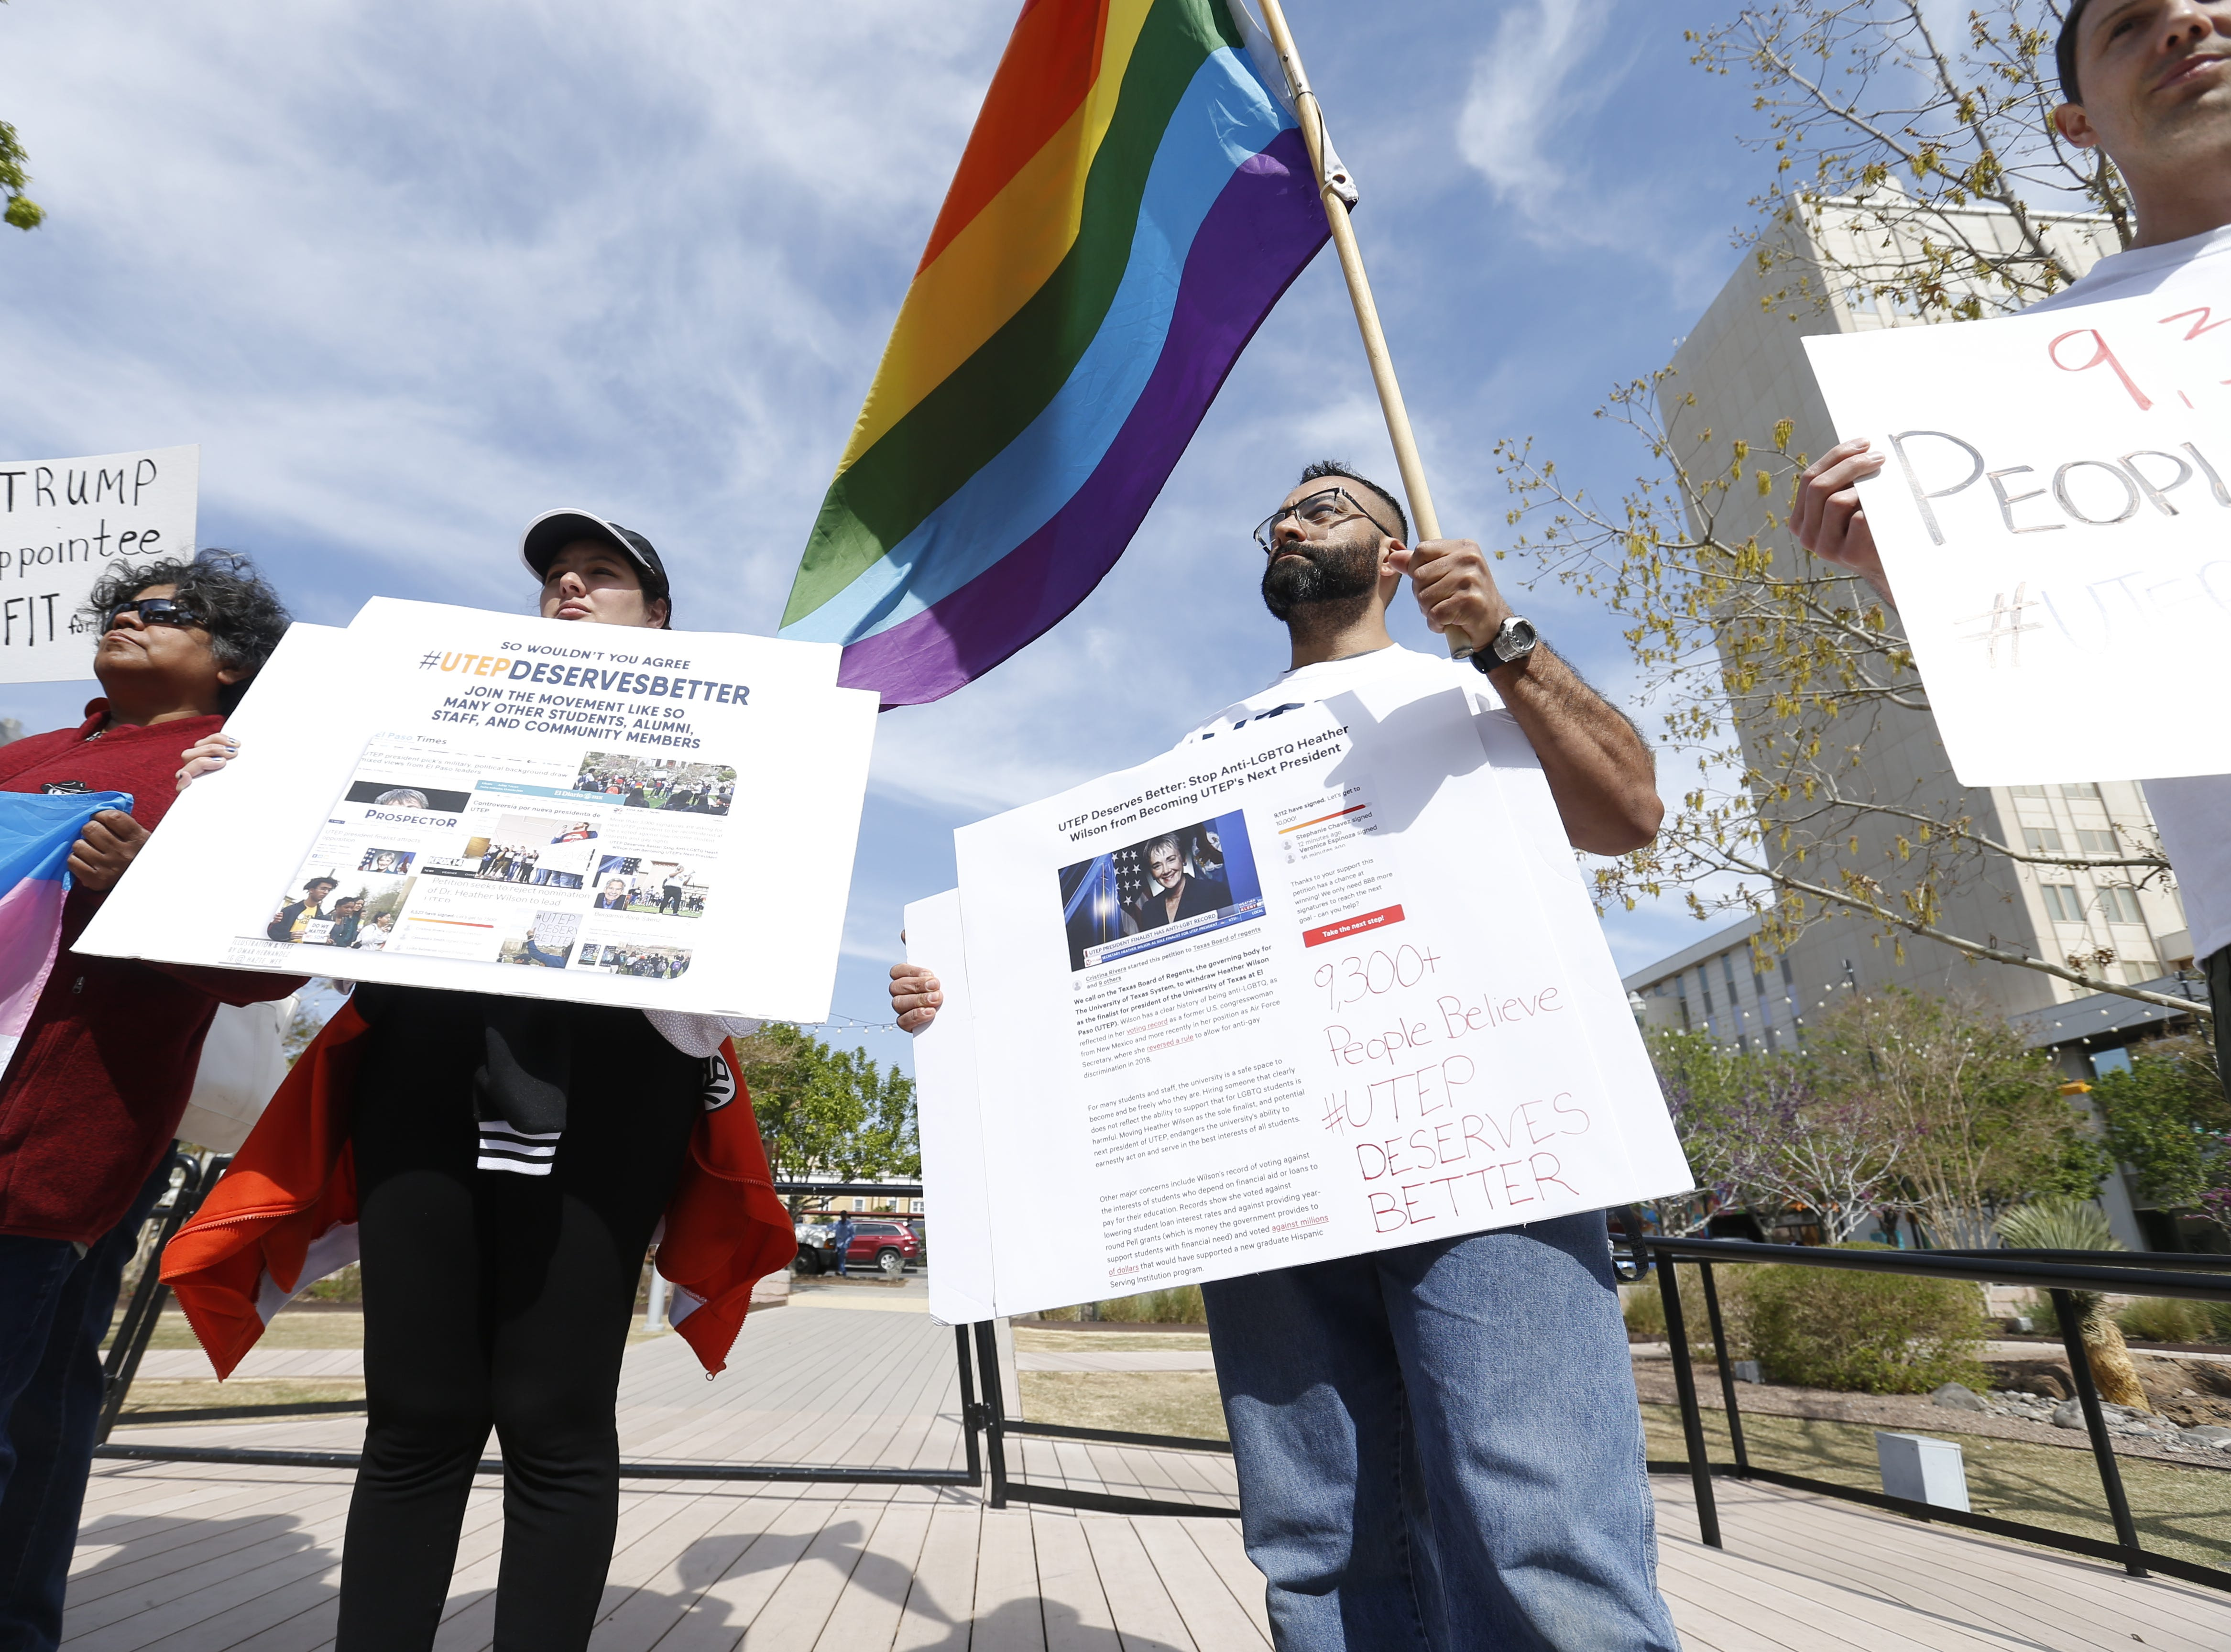 A group of UTEP students and community groups collected over 9,000 signatures calling for Paul Foster, the vice-chairman of the UT board of regents, to stop Heather Wilson from becoming the next UTEP president.